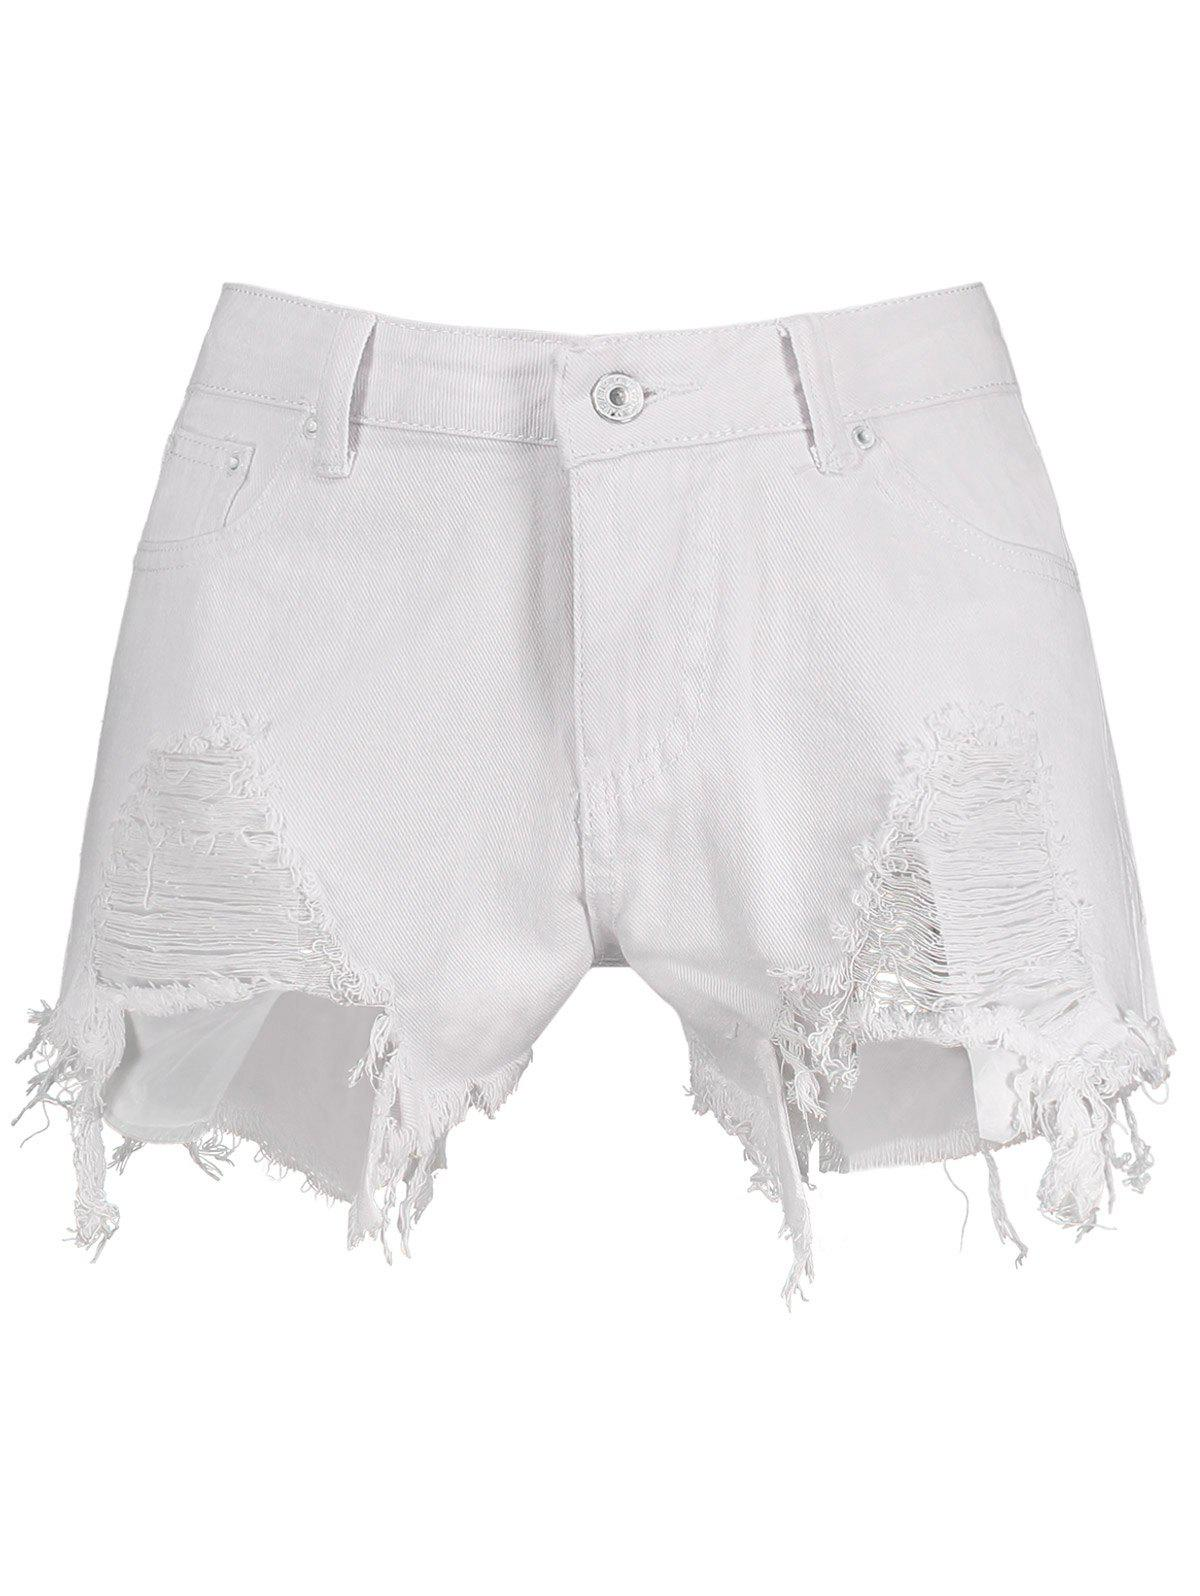 Ripped High Waist Denim Shorts - WHITE 2XL